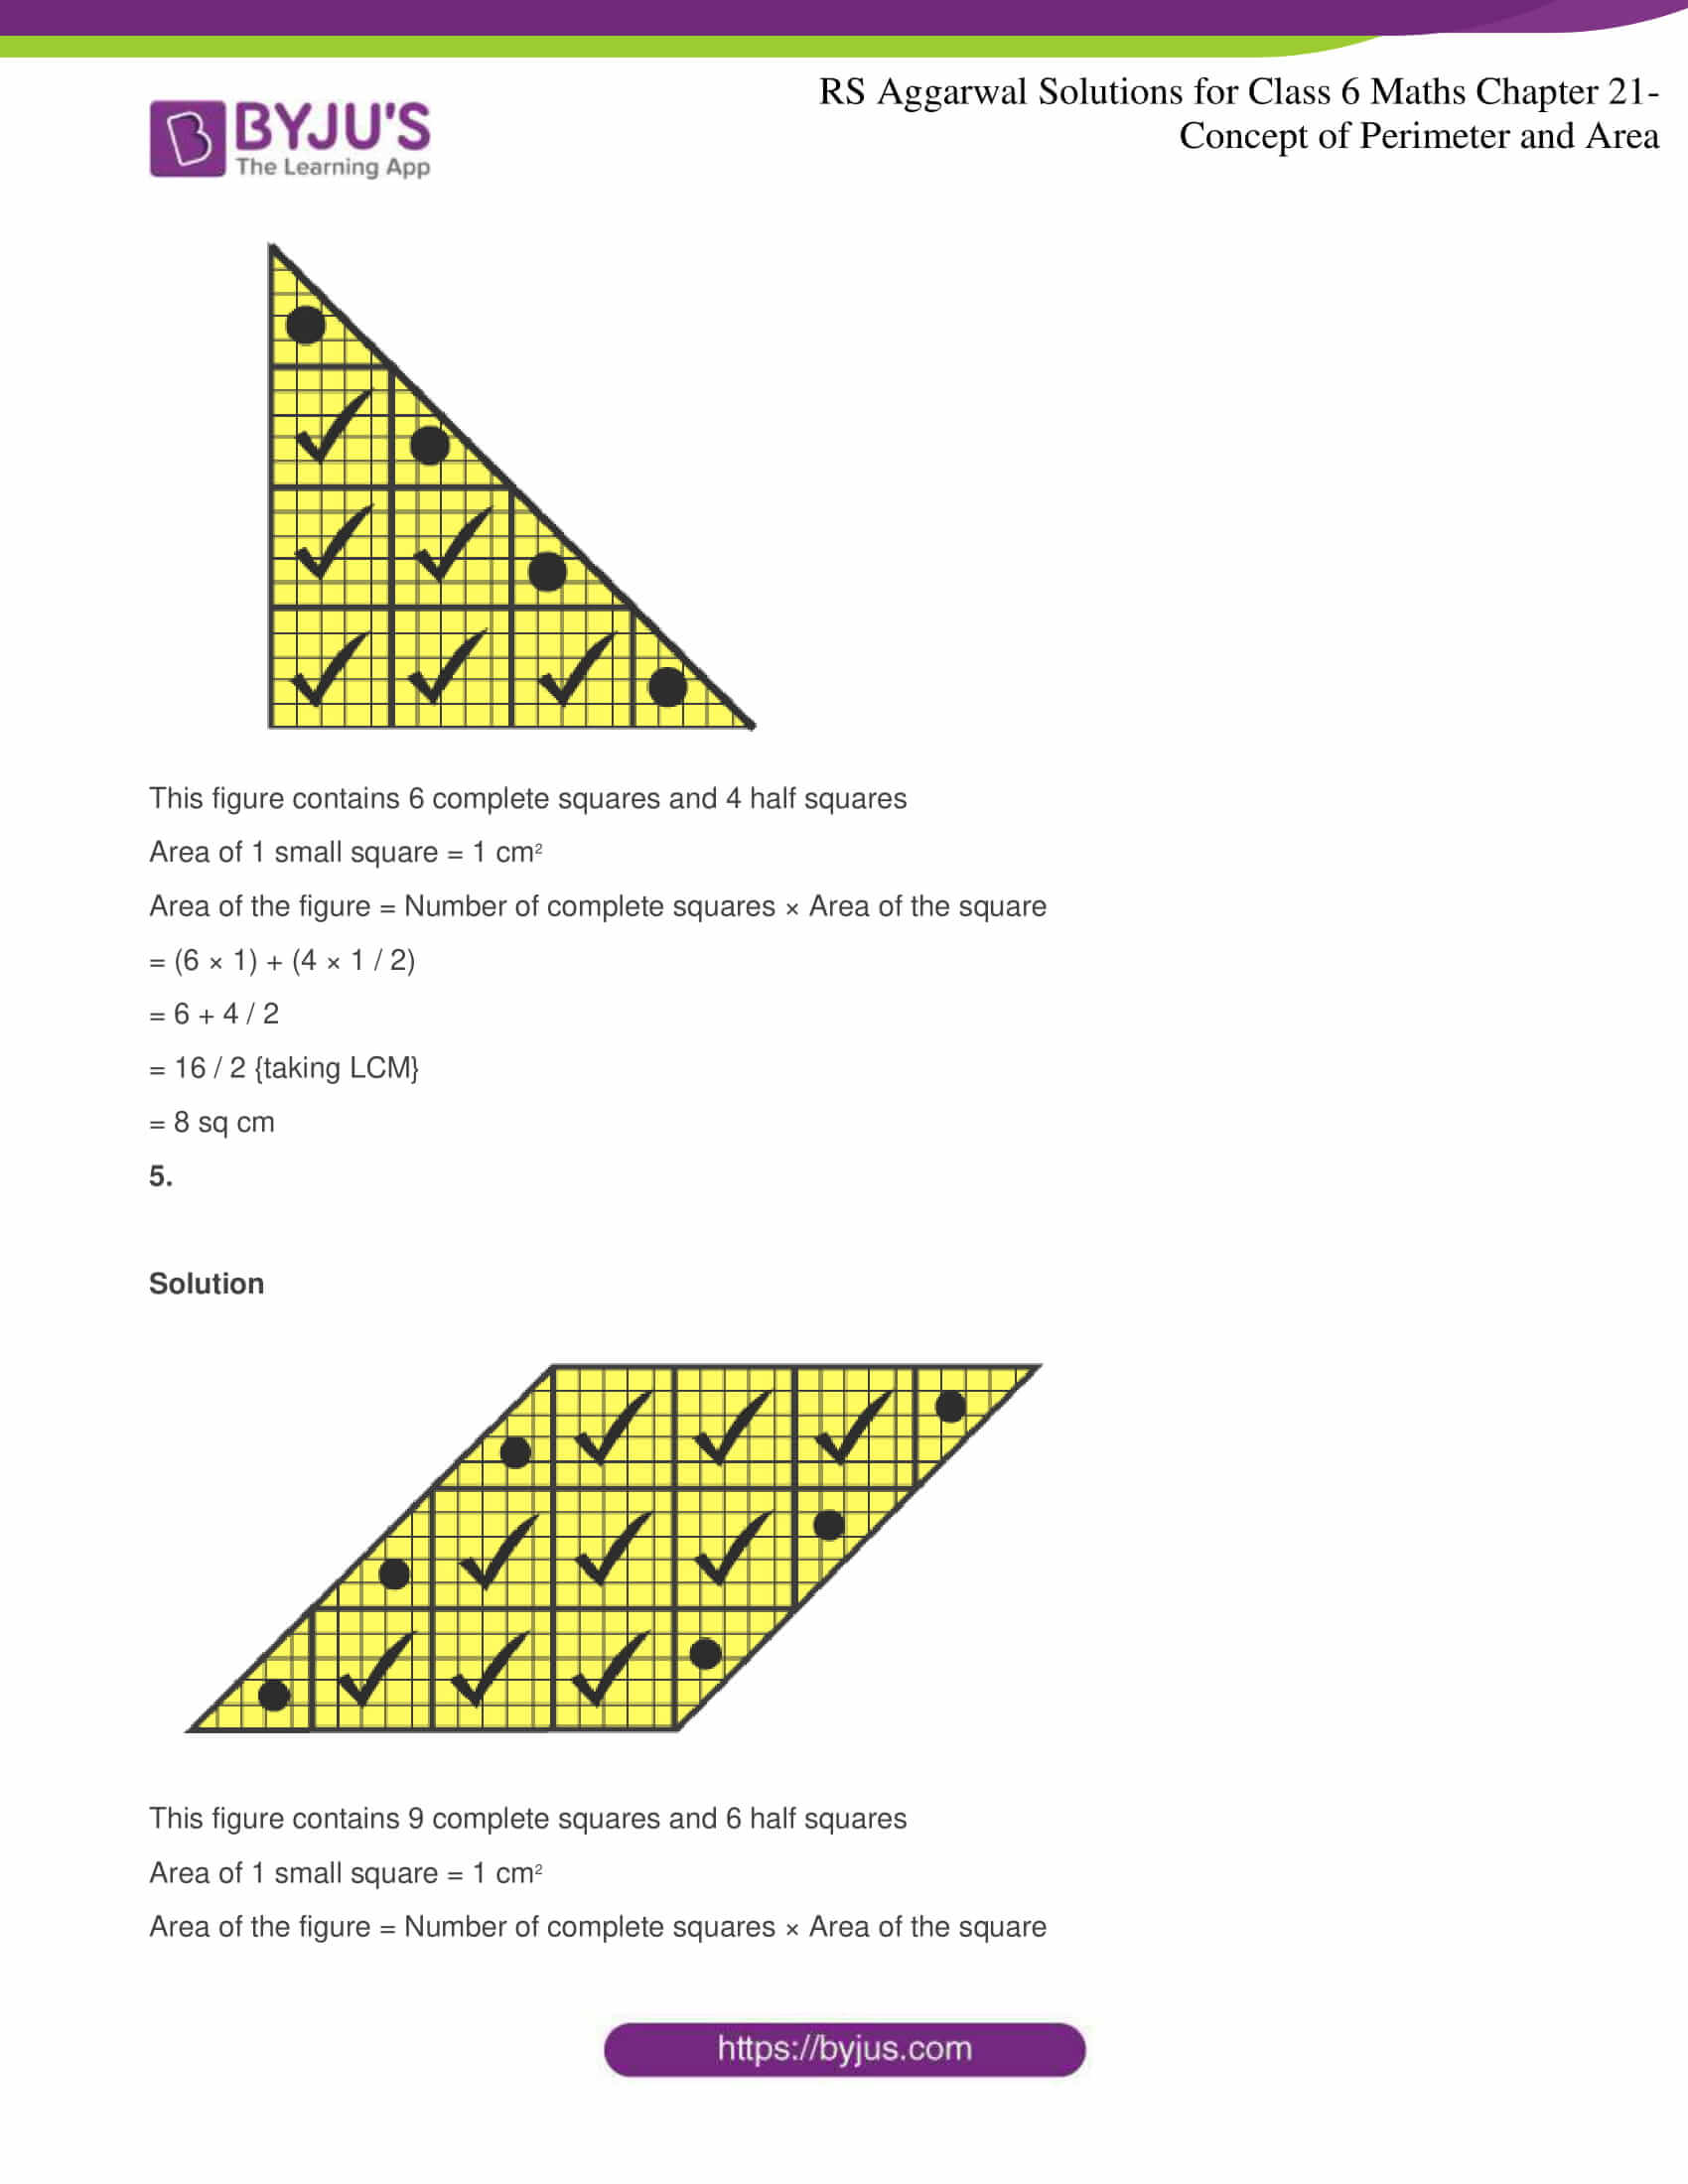 rs aggarwal solutions for class 6 maths chapter 21 11